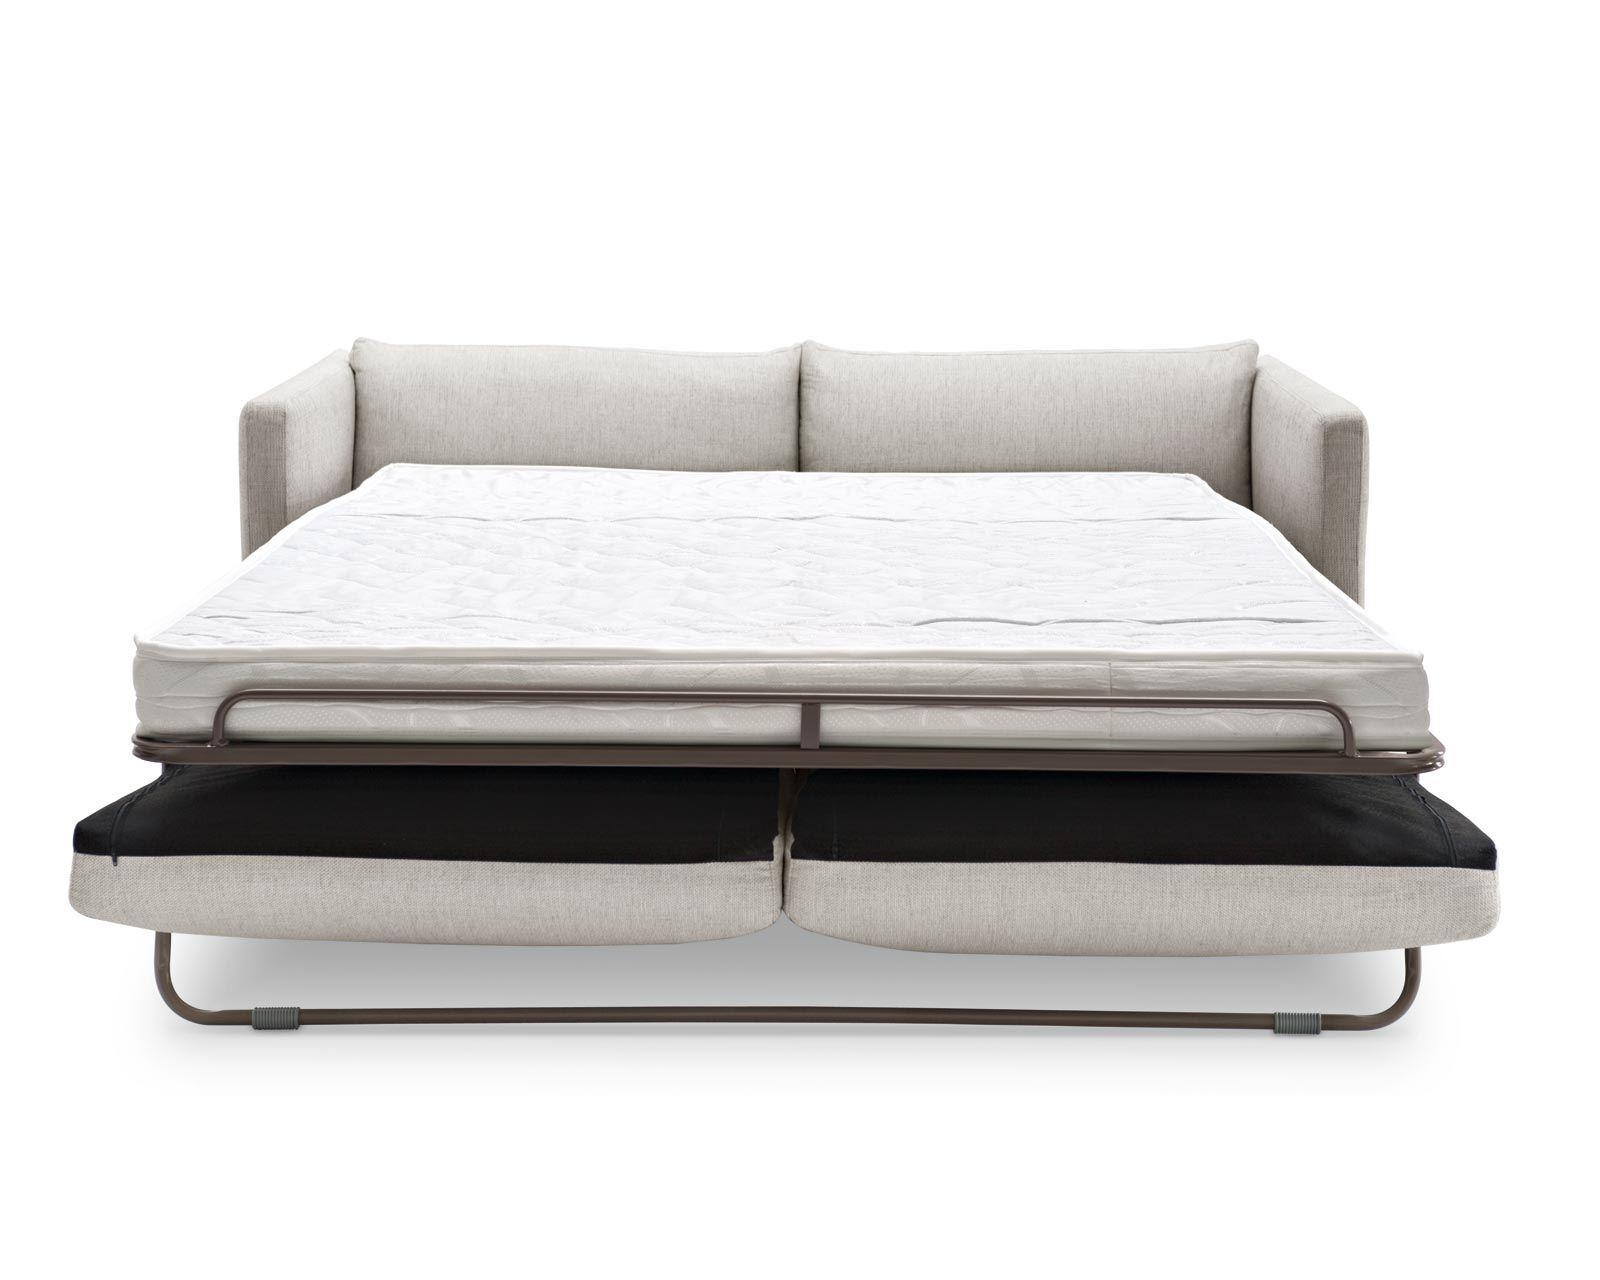 Furniture: Ikea Sofa Beds | Sofa With Pull Out Bed Ikea | Ikea In Pull Out Queen Size Bed Sofas (View 6 of 20)